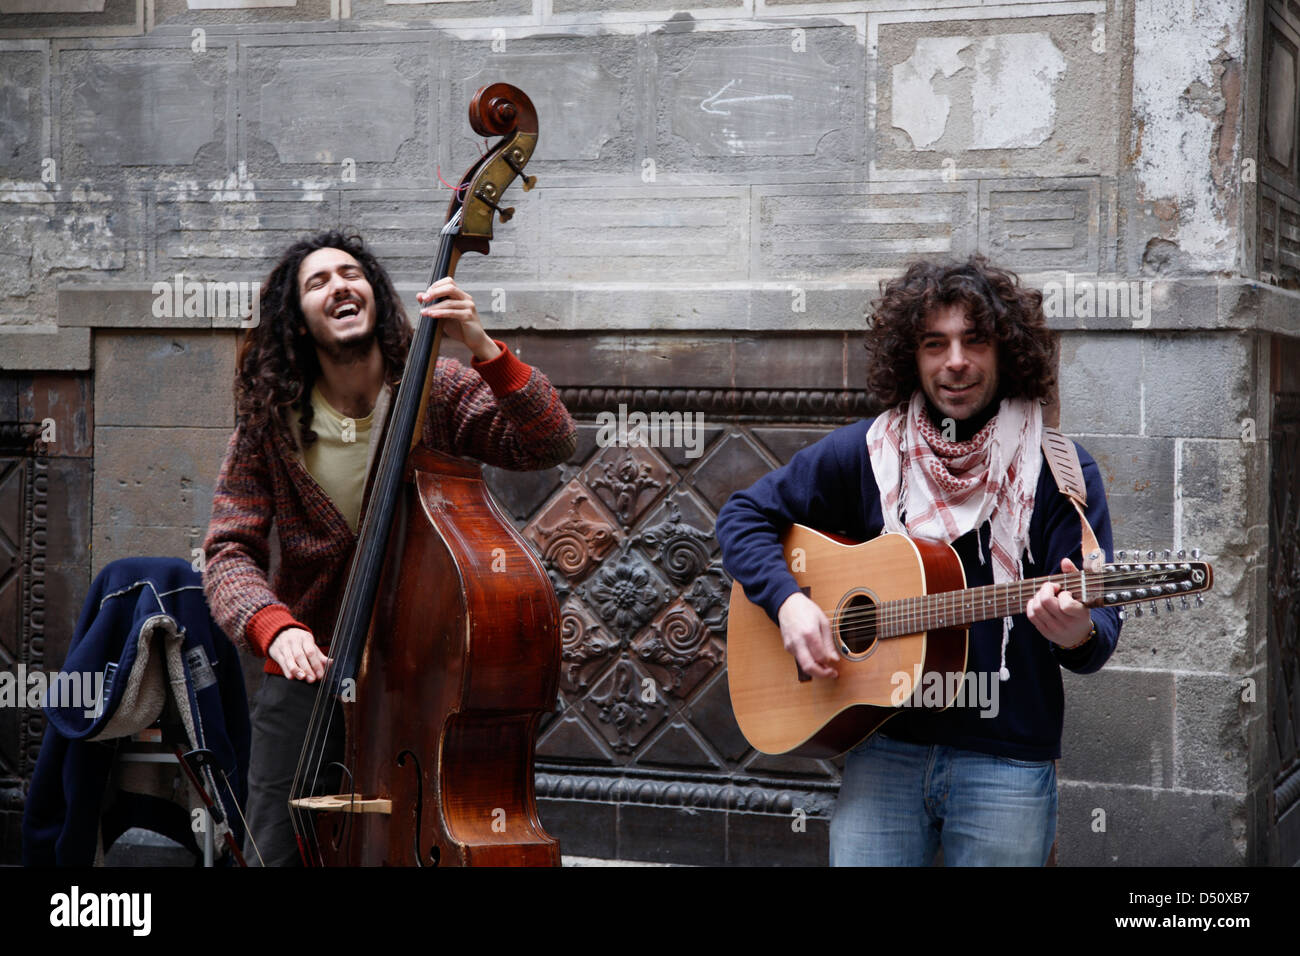 Street musicians at Barri Gotic, Barcelona, Spain - Stock Image